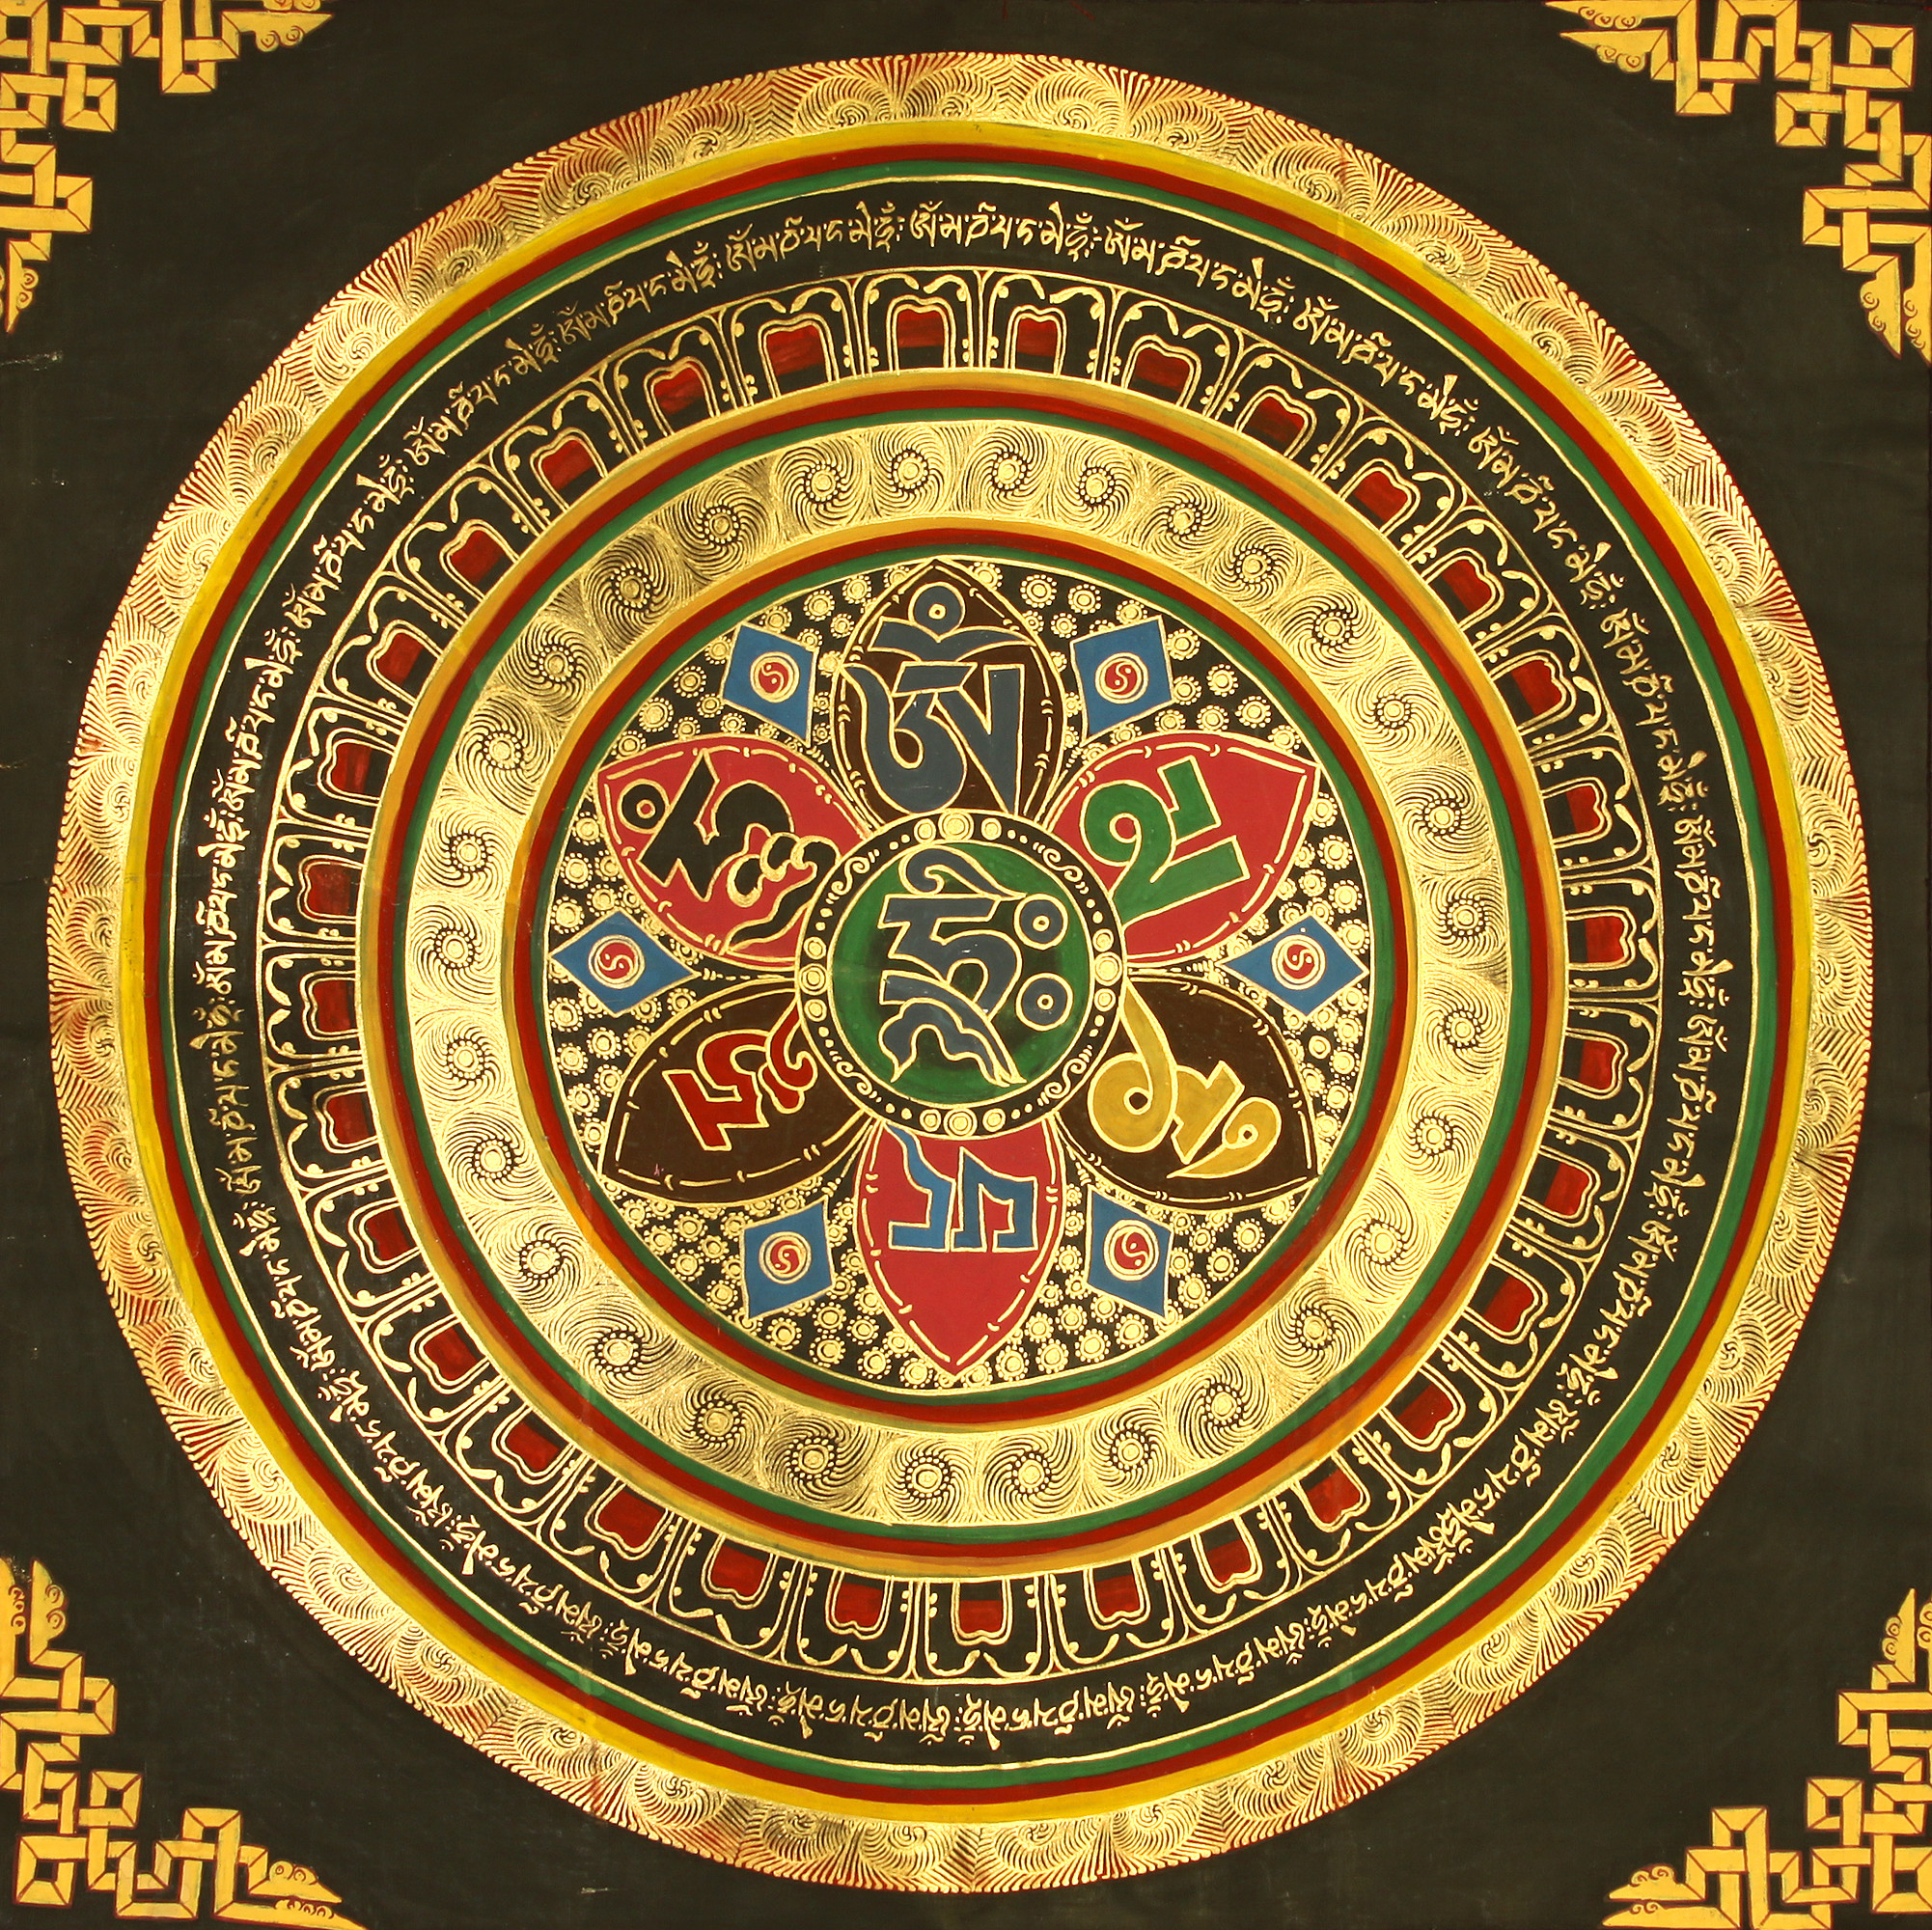 Res: 2002x2000, HD Wallpaper of Buddhist Mandala Wallpaper, Desktop Wallpaper Buddhist Mandala  Wallpaper